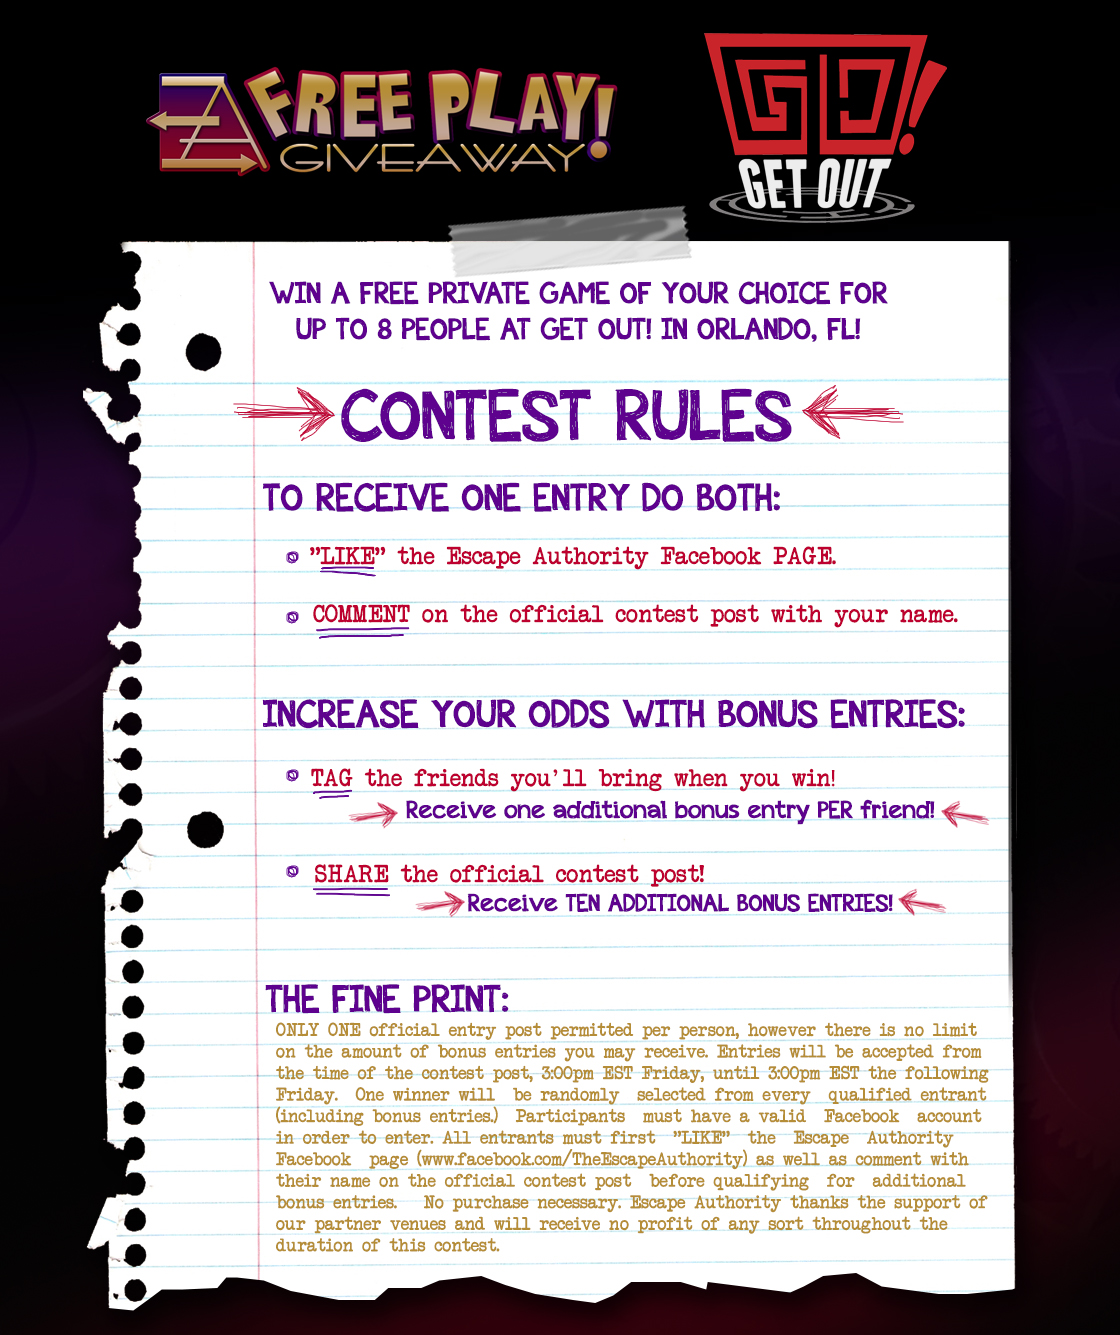 Contest: Win a FREE Private Game at Get Out! - Escape Authority